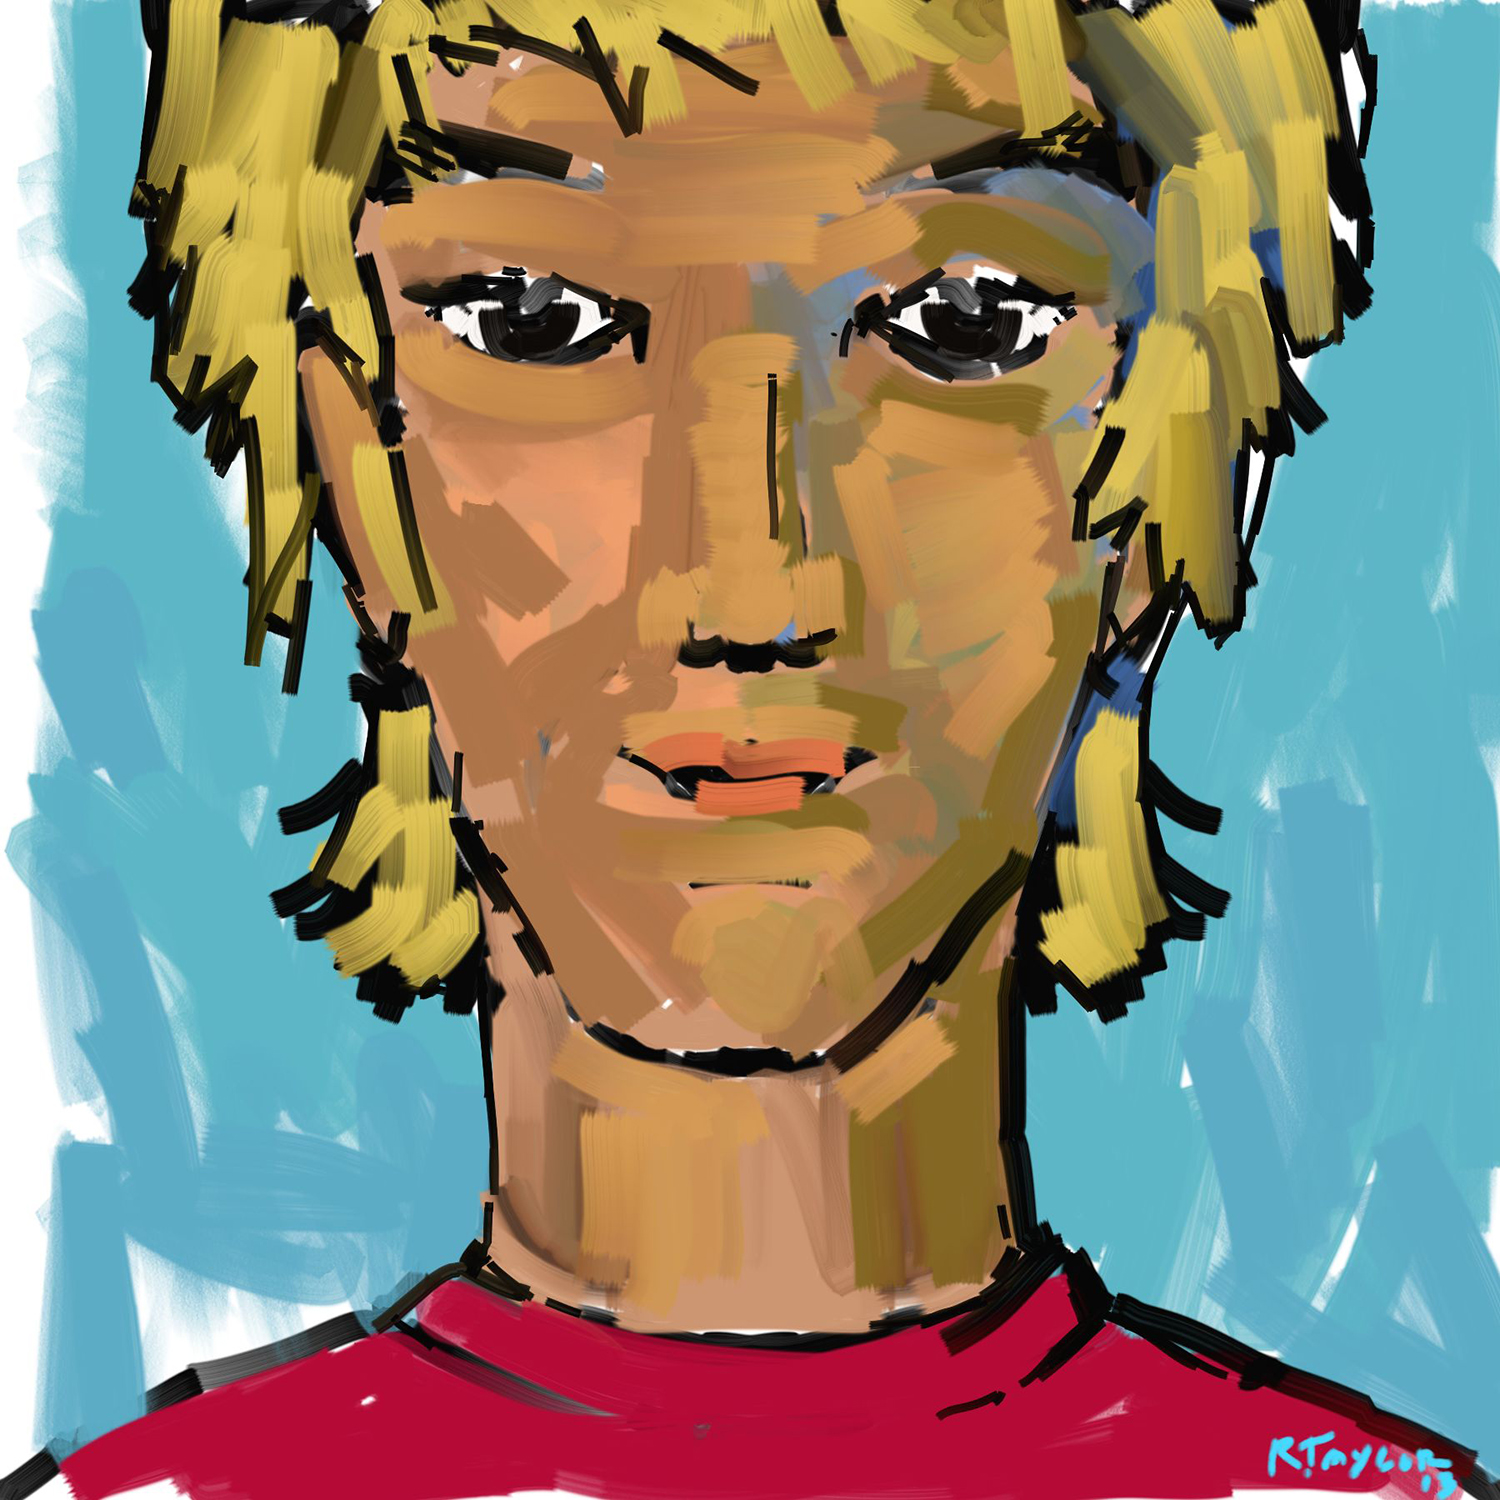 digital illustration of a surfer kid